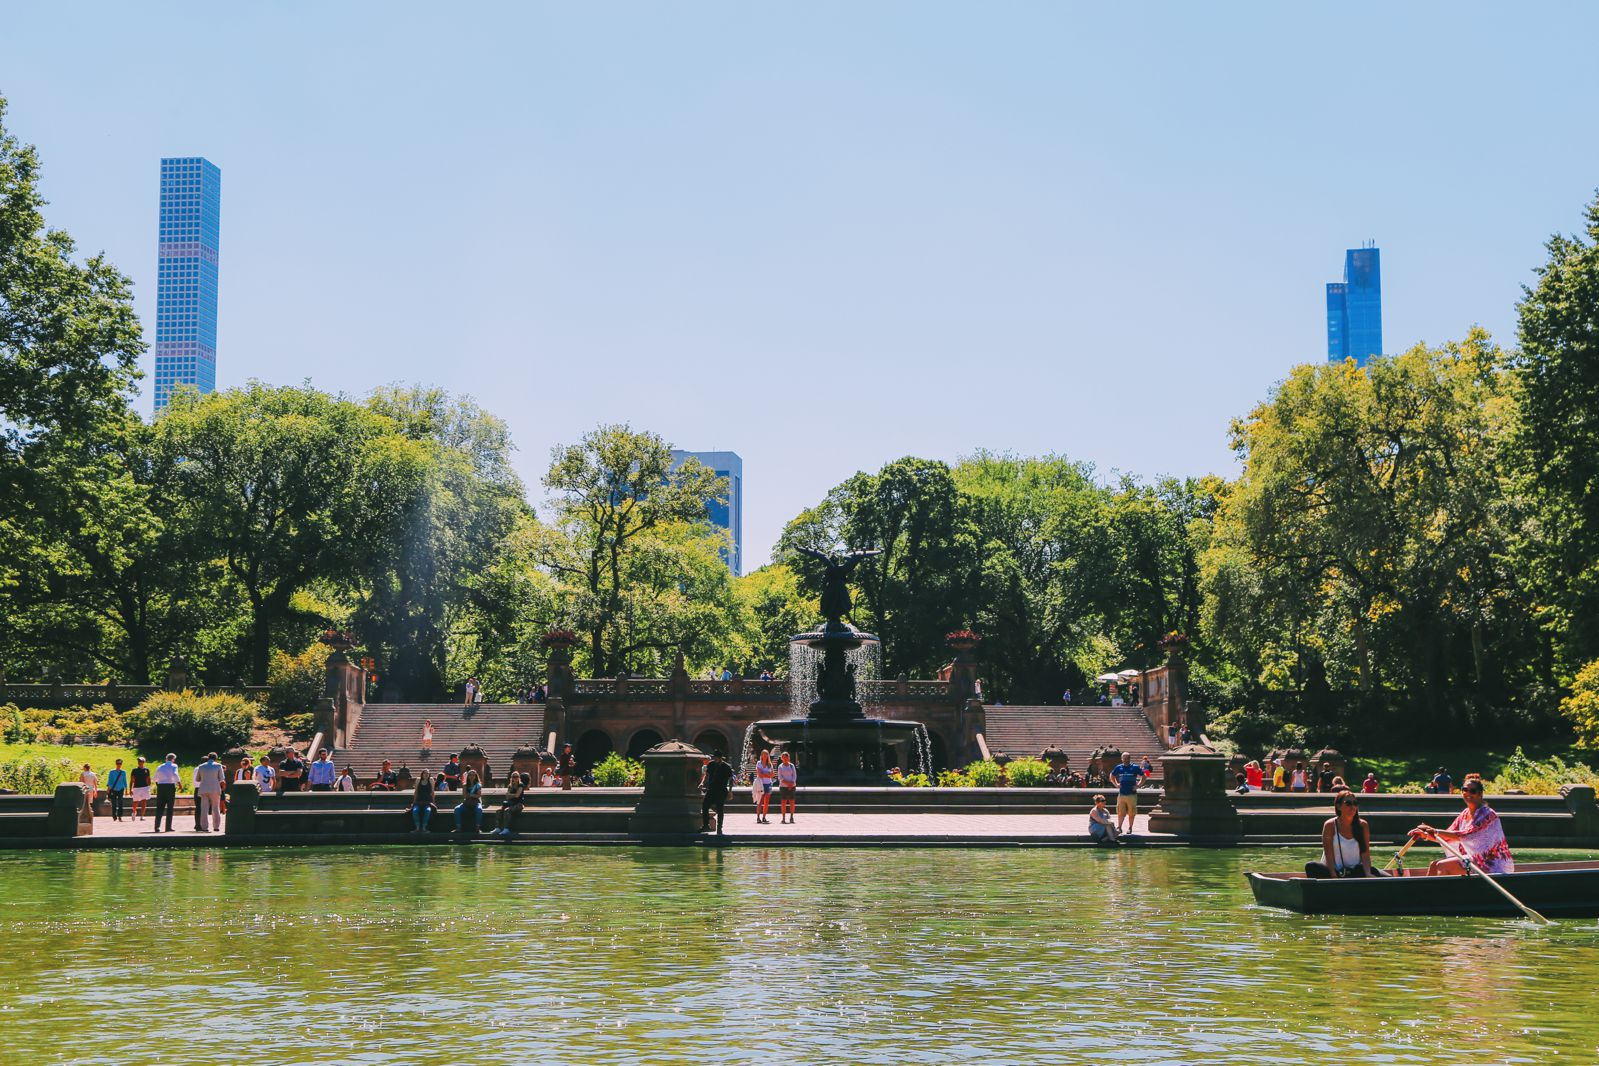 Boating at the Loeb Boathouse in Central Park, New York City (25)